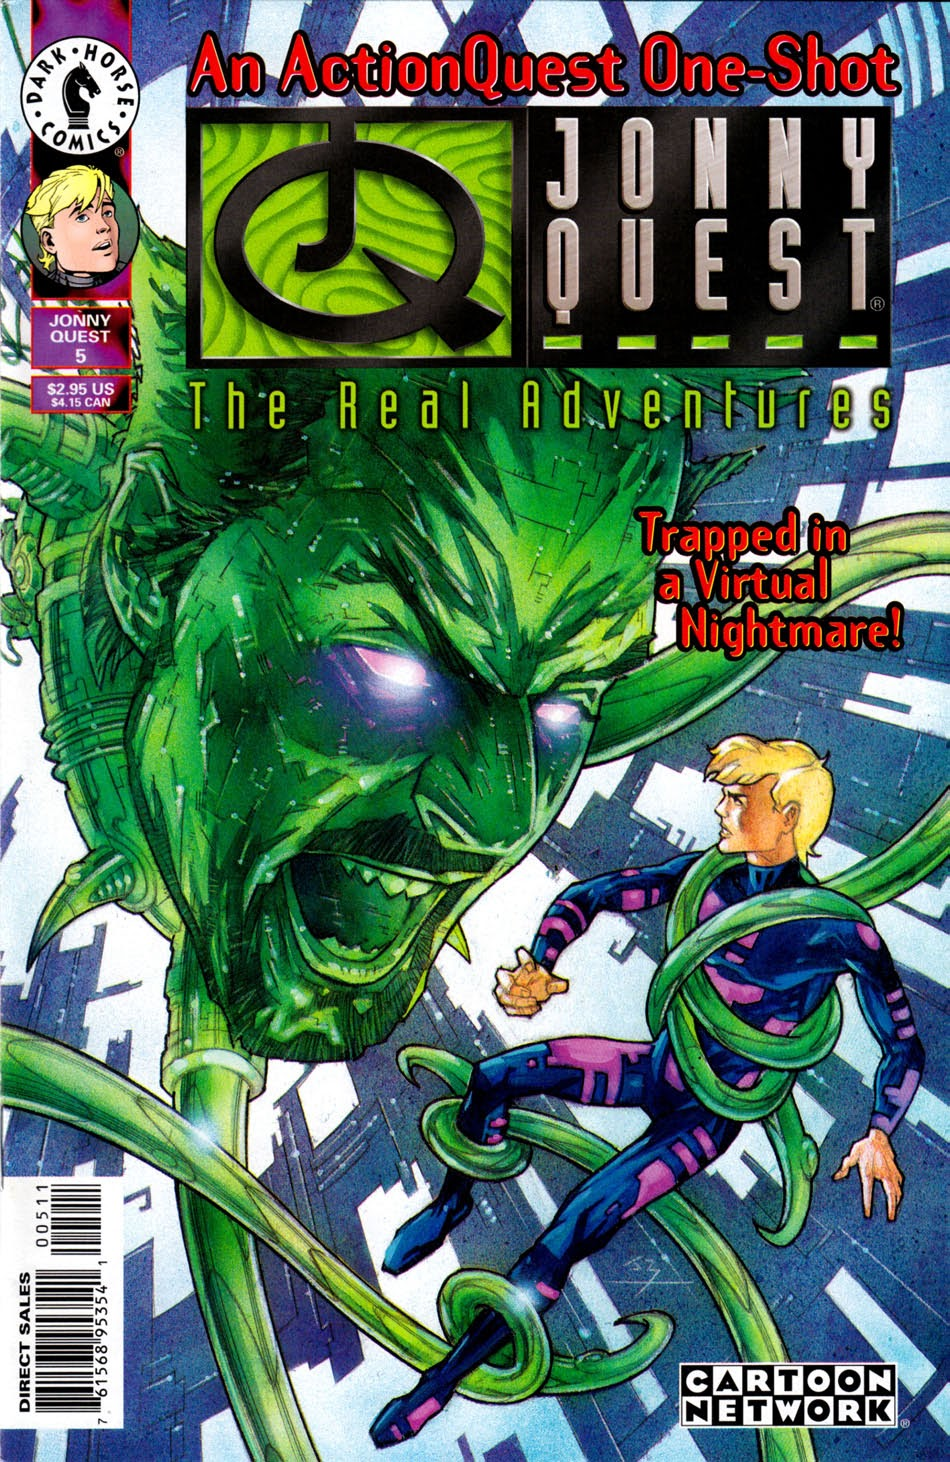 Read online The Real Adventures of Jonny Quest comic -  Issue #5 - 1